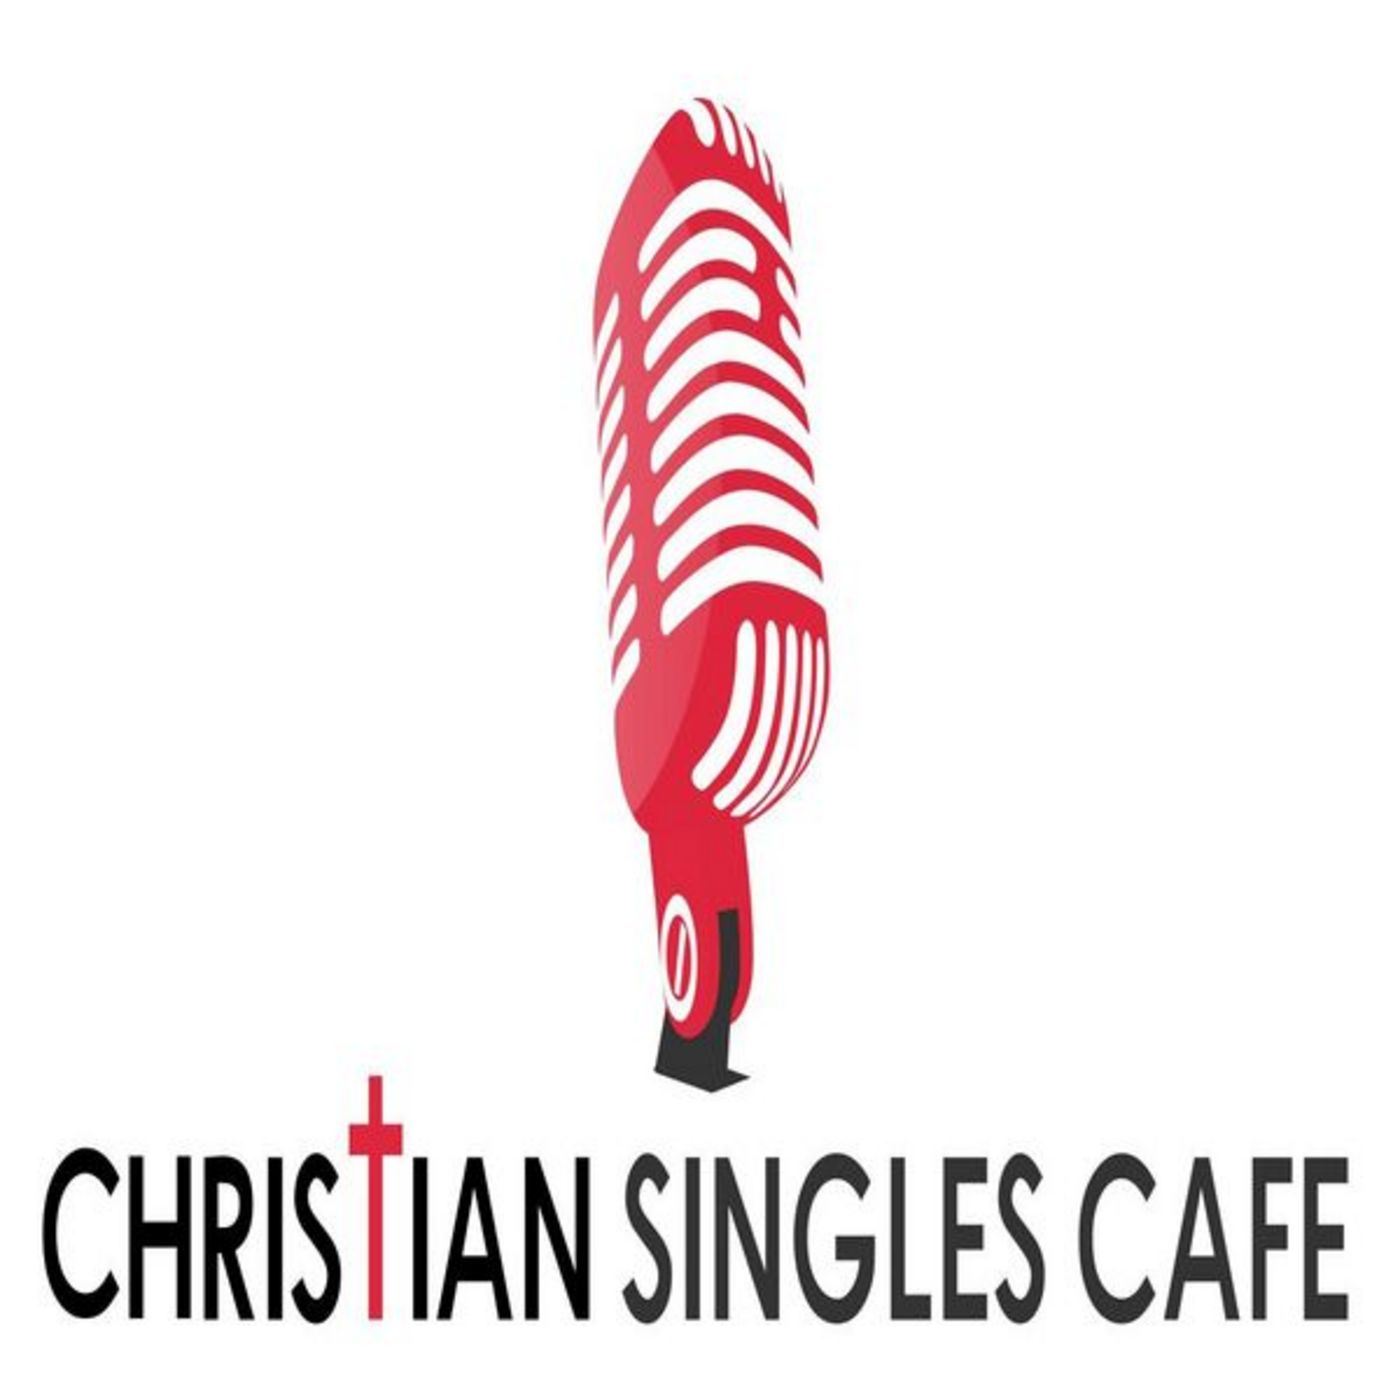 Christian Singles Cafe